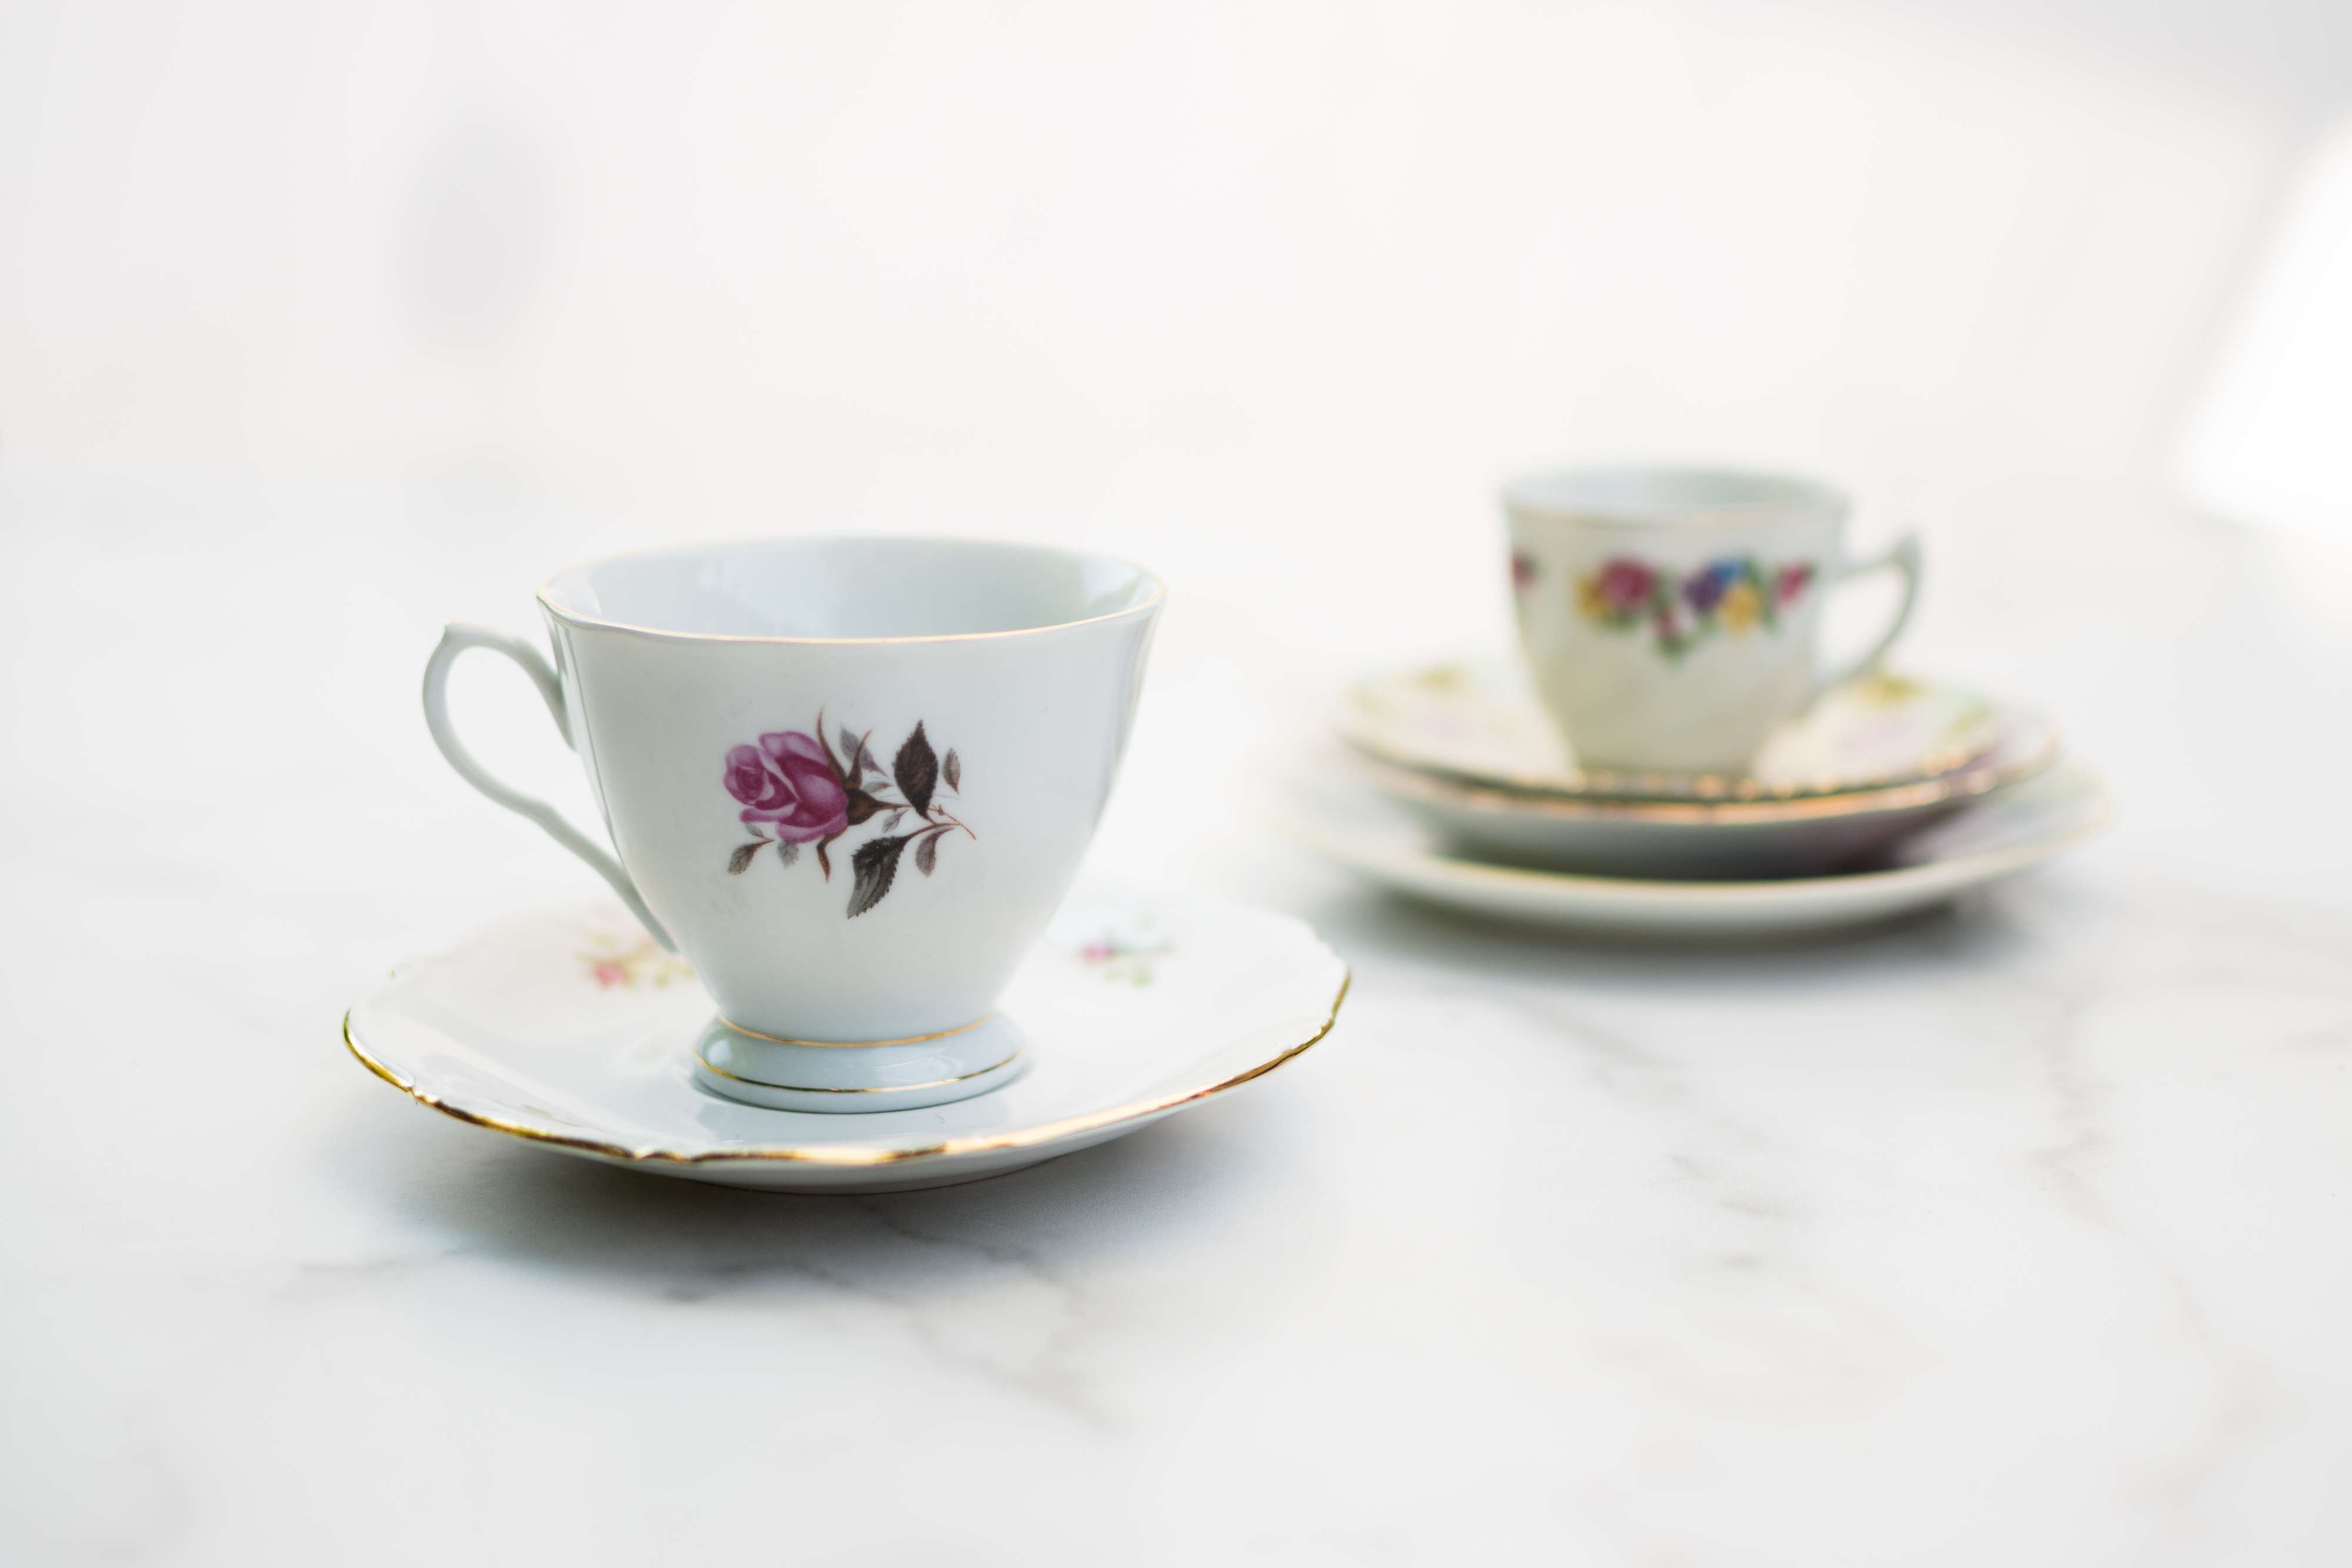 Vintage china cups and saucers not placed in dishwasher